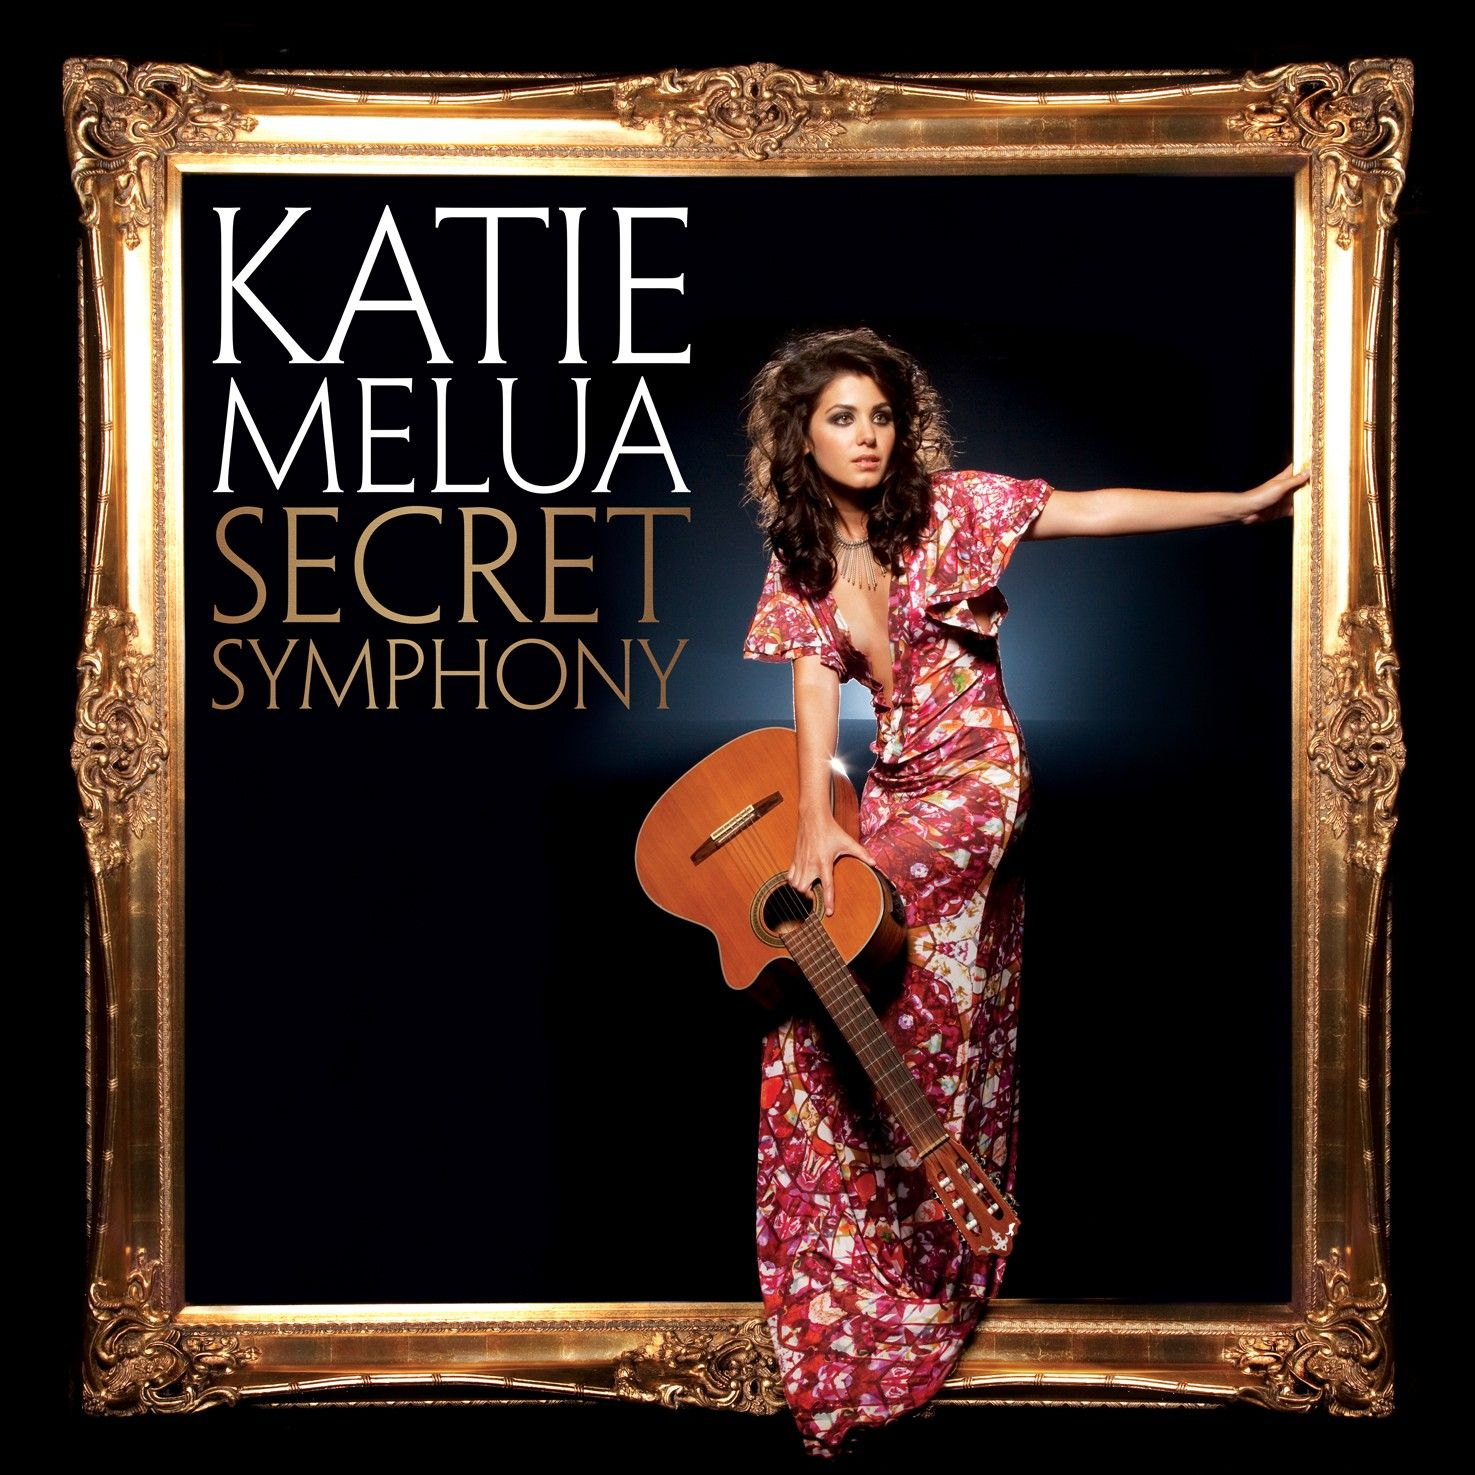 Katie Melua - Secret Symphony album cover